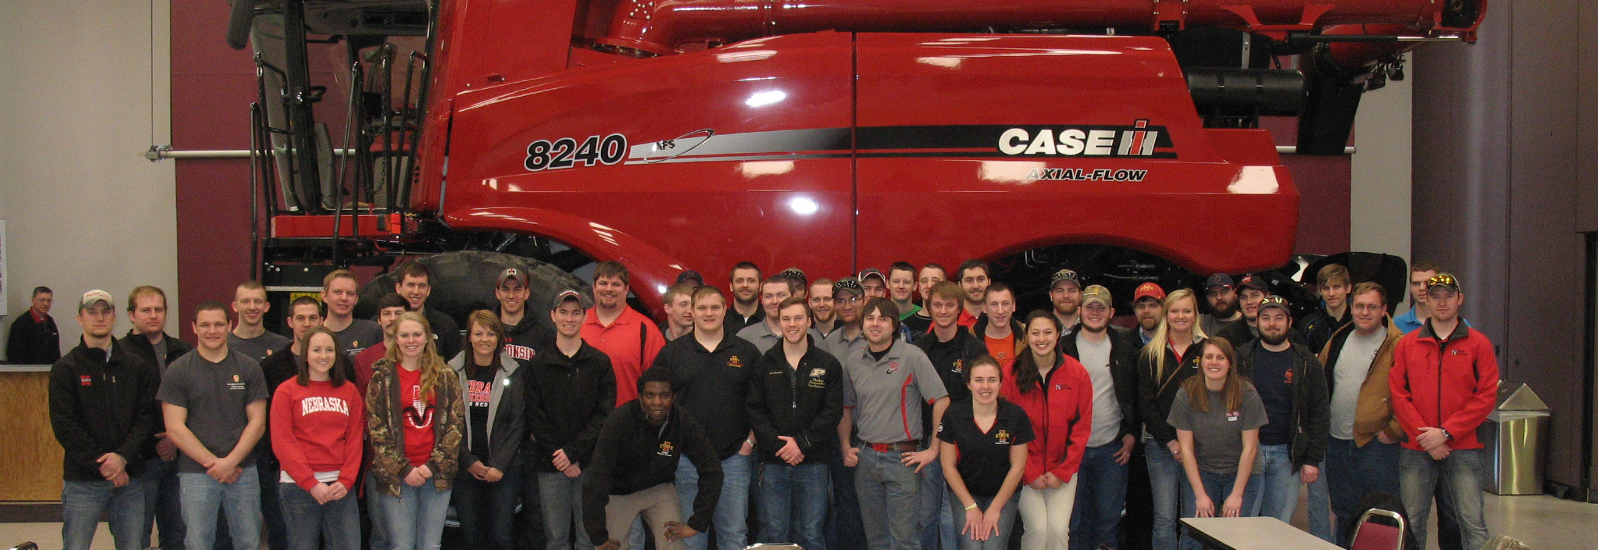 ASABE midwest rally